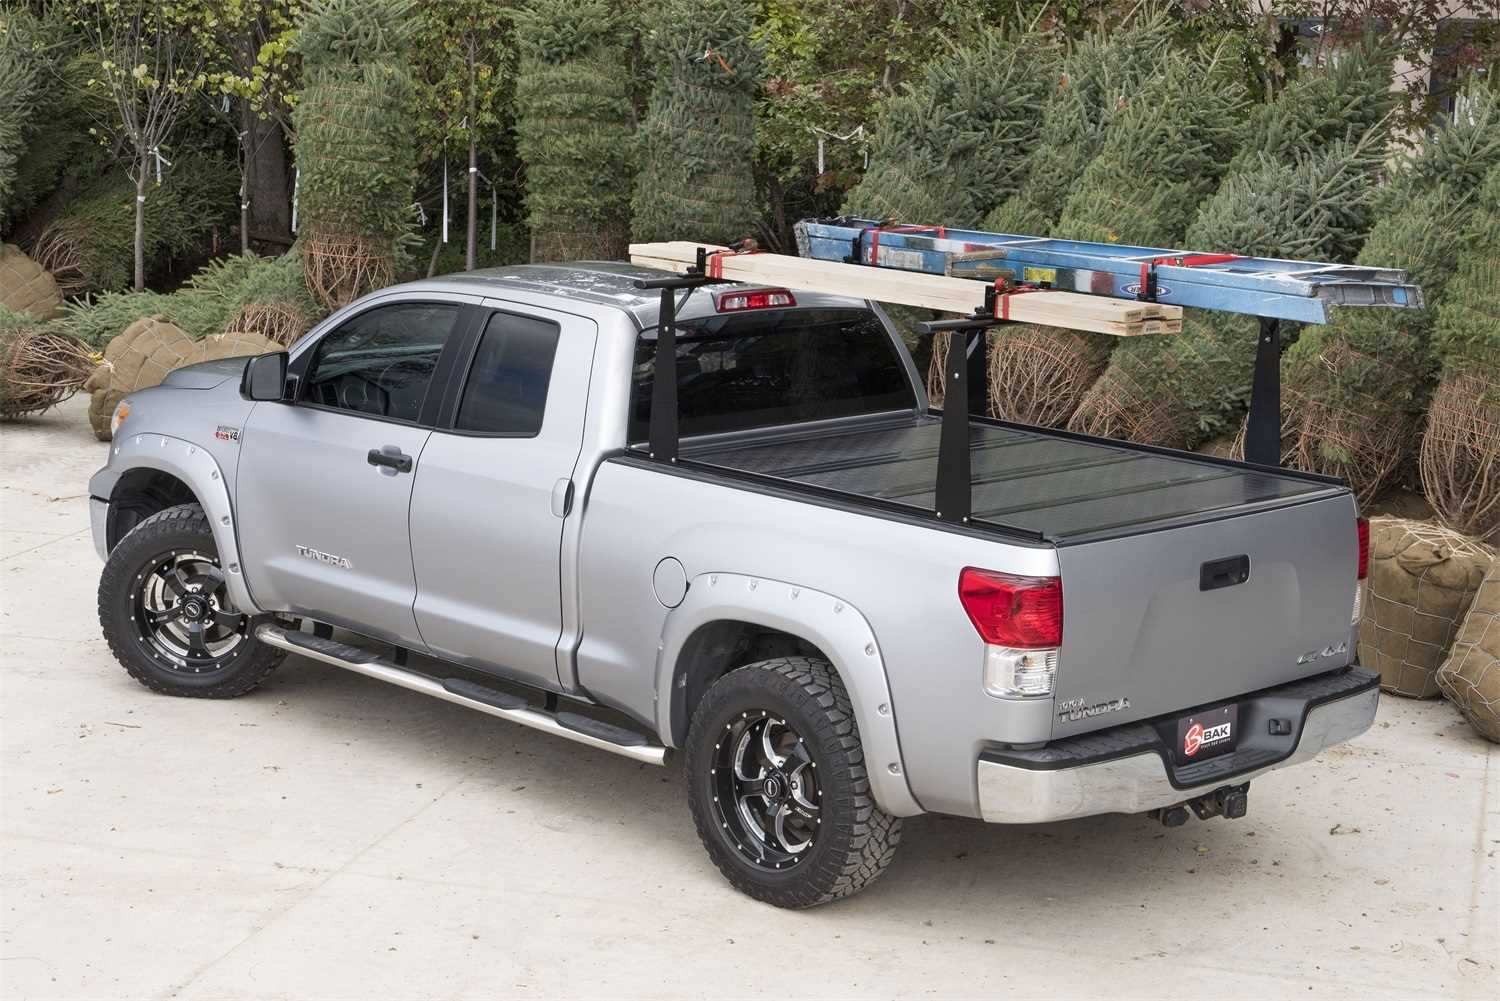 72106BT Bak Industries BAKFlip CS-F1 Hard Folding Truck Bed Cover/Integrated Rack System